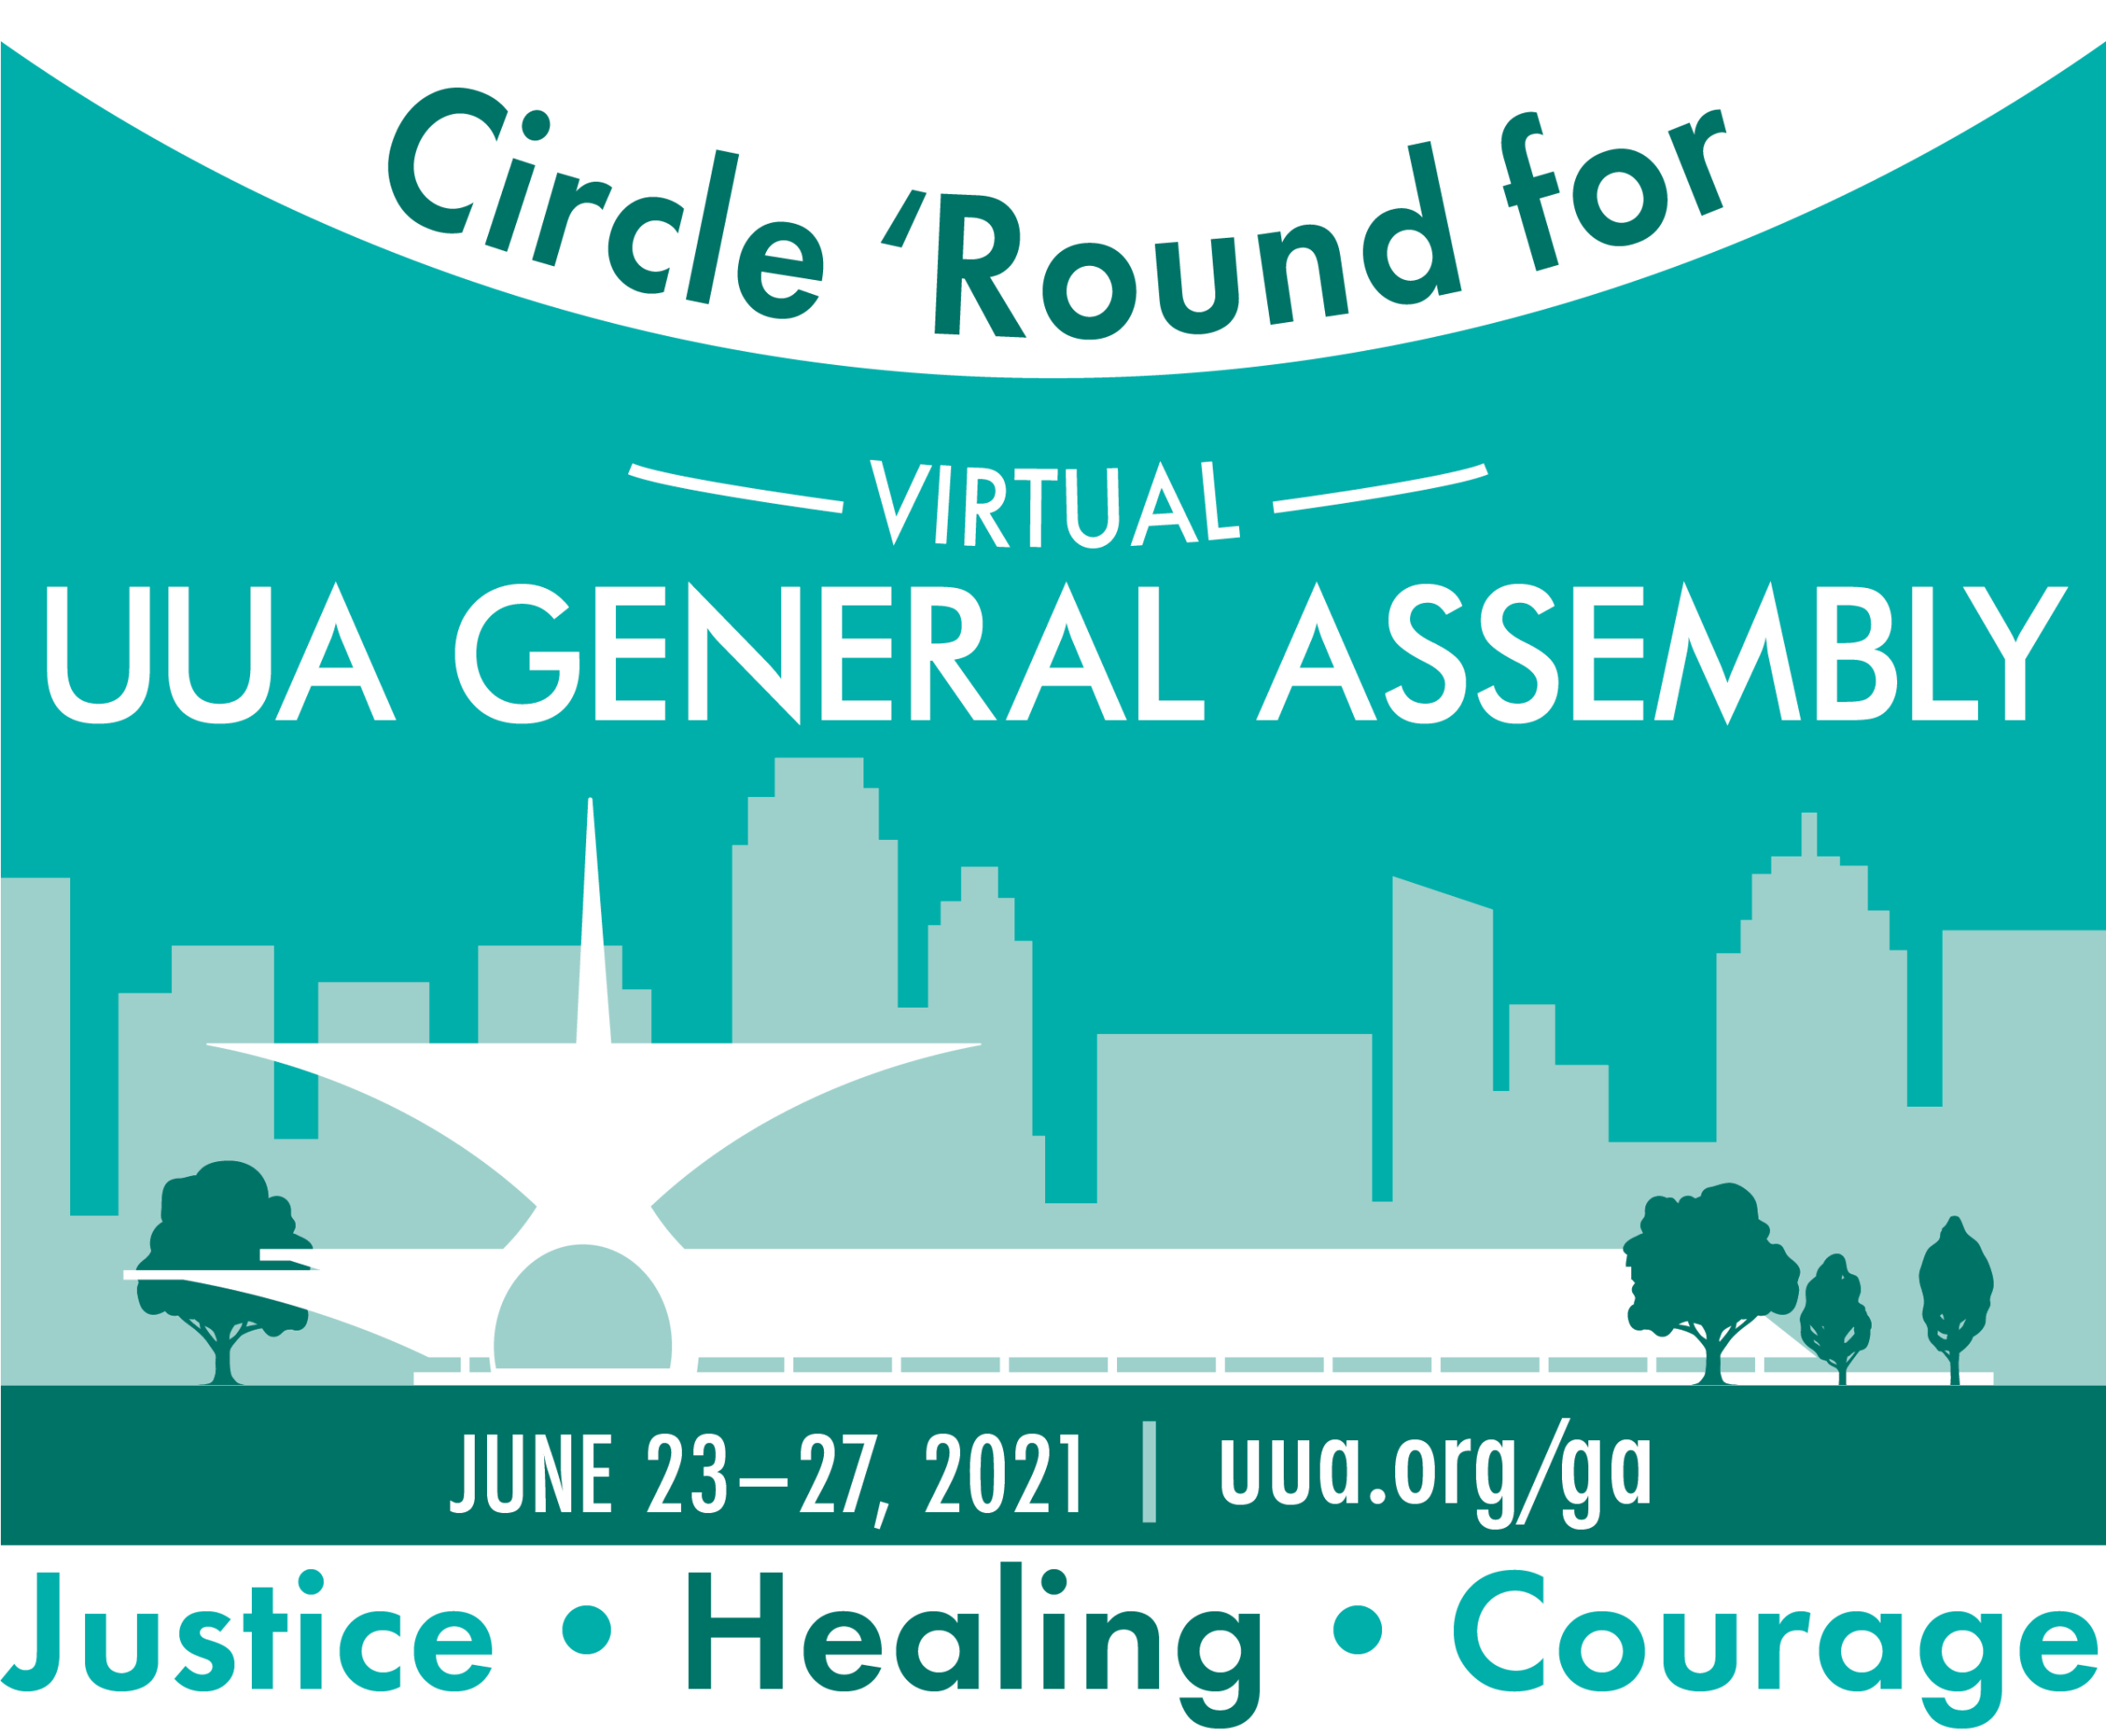 General Assembly: The Unitarian Universalist Association's Annual Meeting | UUA.org